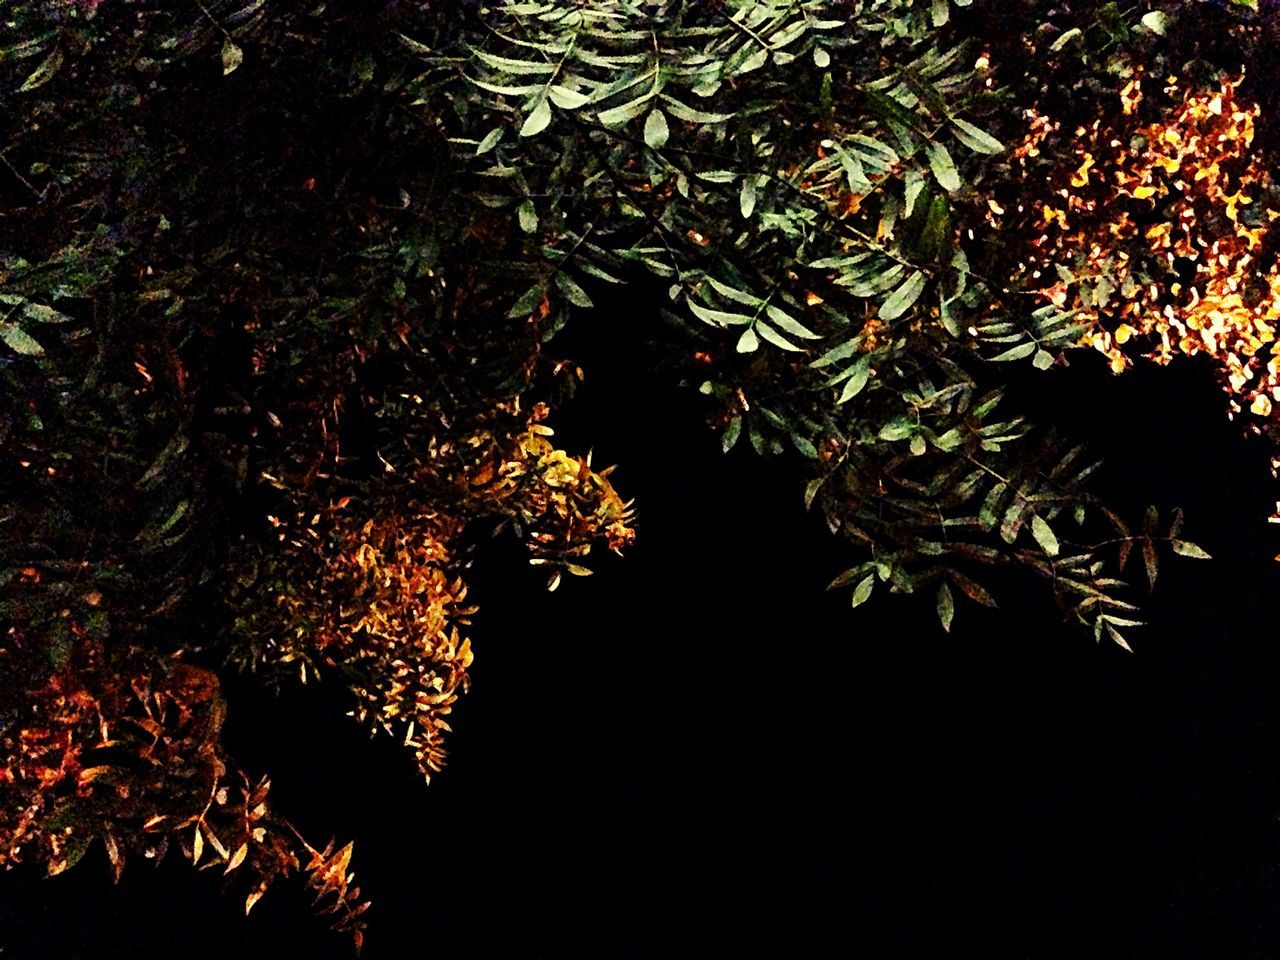 tree, growth, nature, night, beauty in nature, branch, no people, leaf, outdoors, close-up, freshness